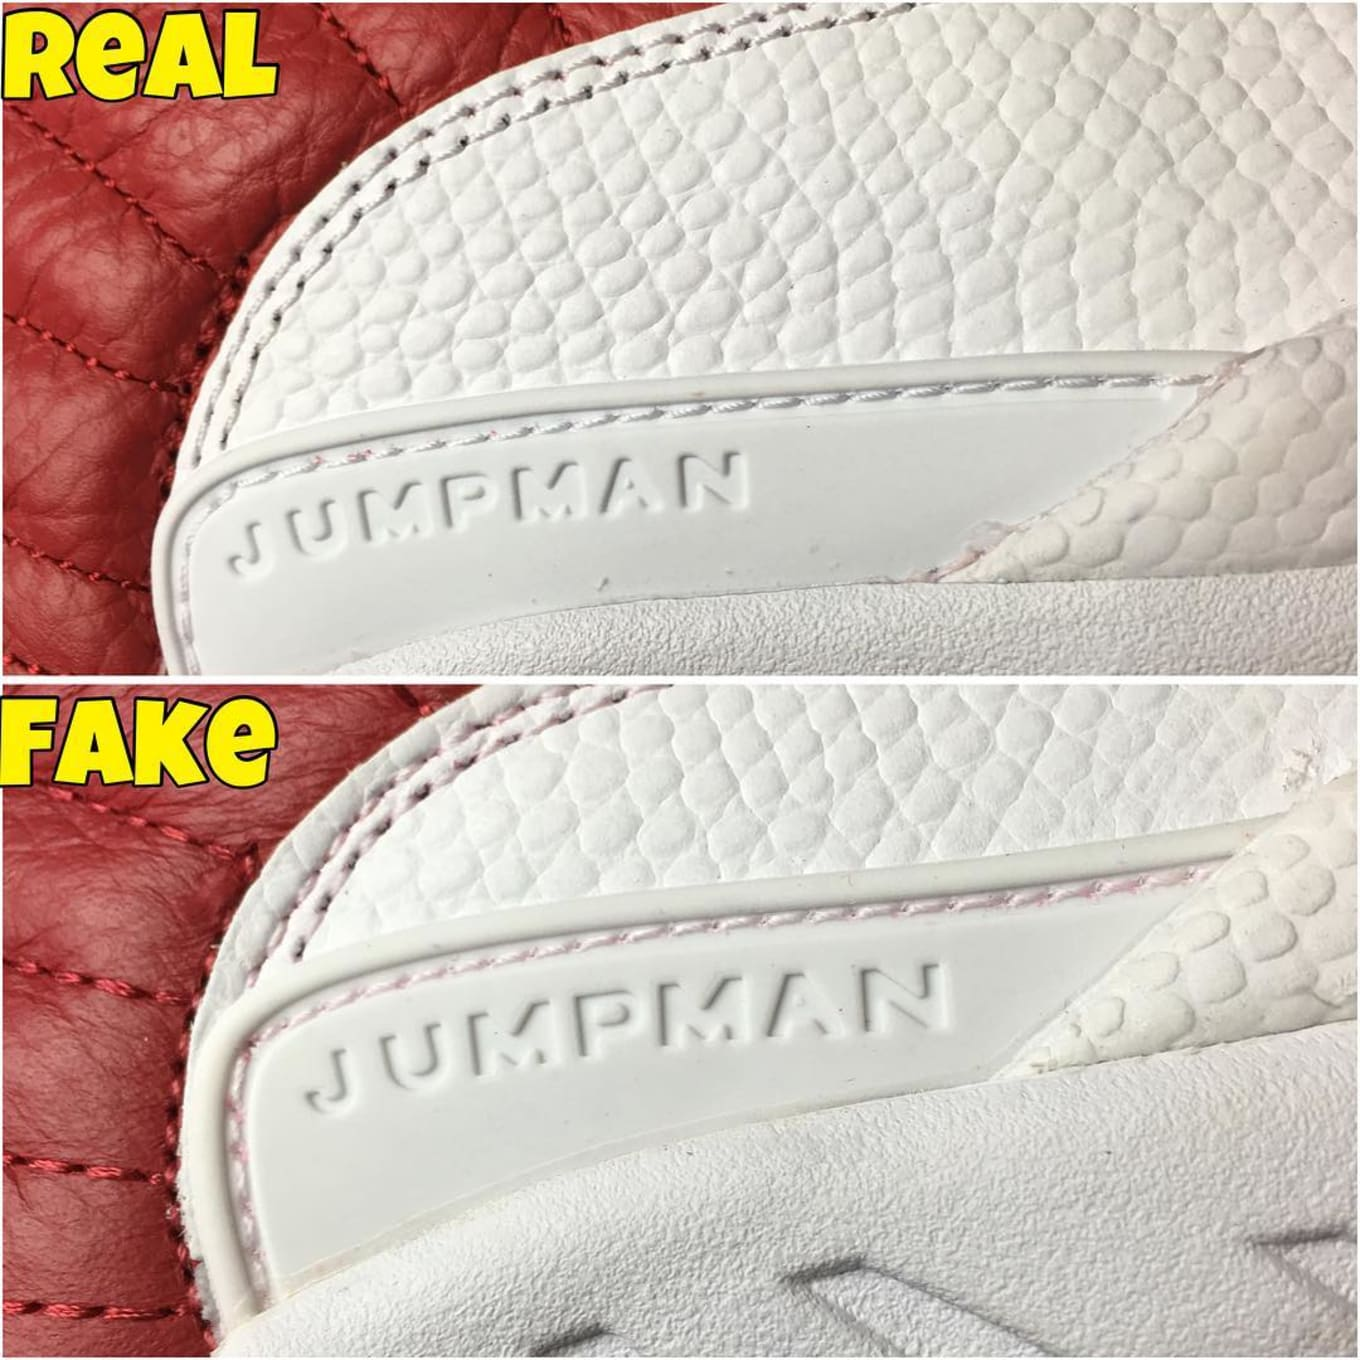 e36cdee6386f Air Jordan XII 12 Gym Red Alternate Real Fake Legit Check (3)